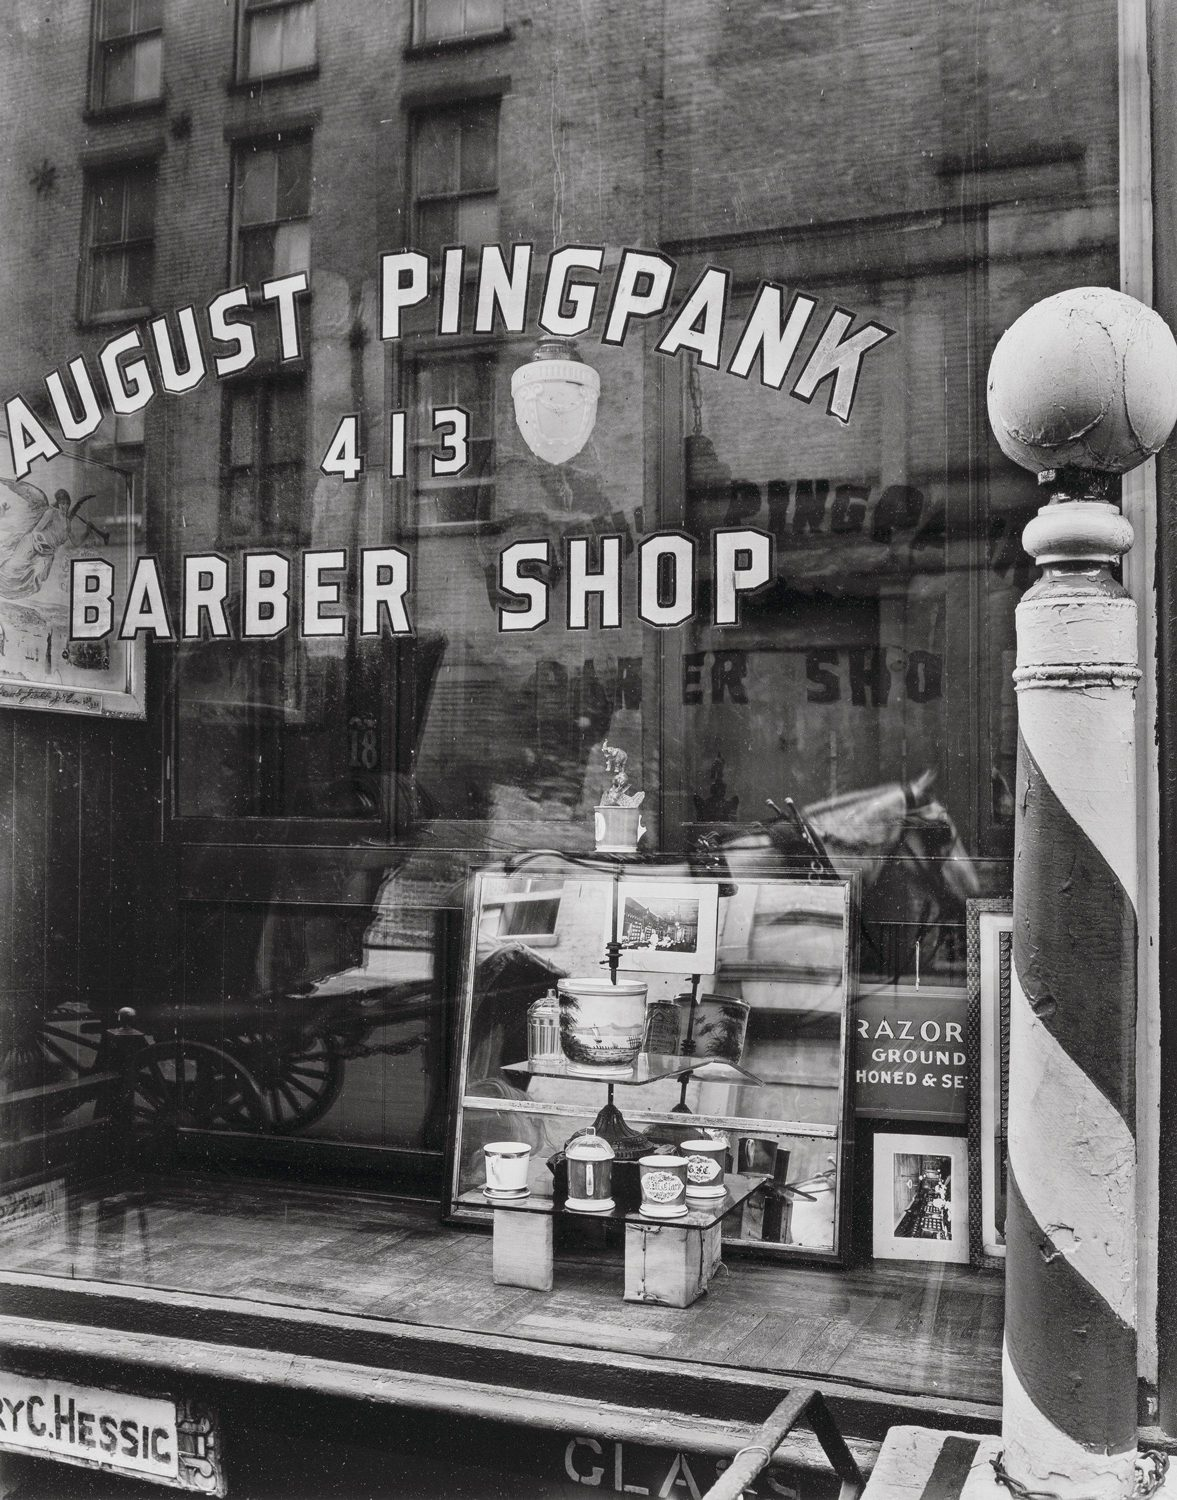 August Pingpank Barber Shop